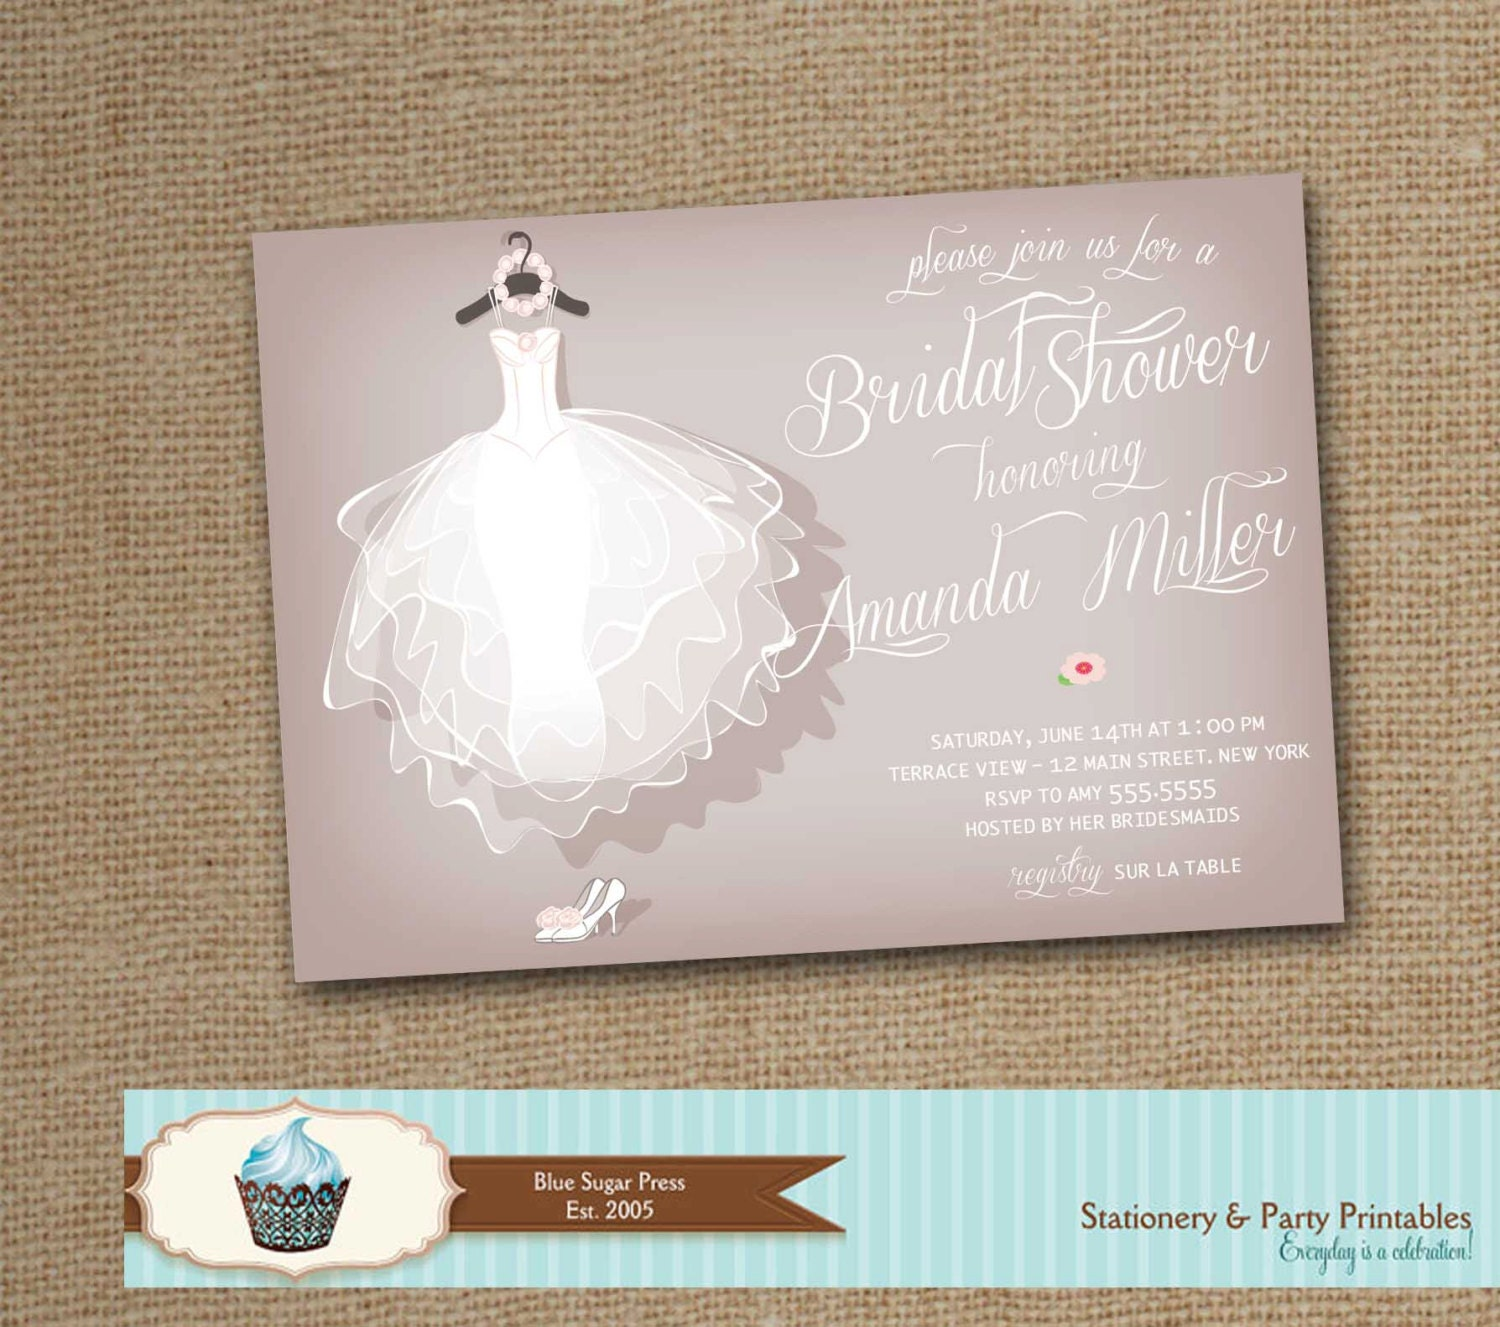 Wedding dress bridal shower invitation bridal shower for Wedding dress bridal shower invitations